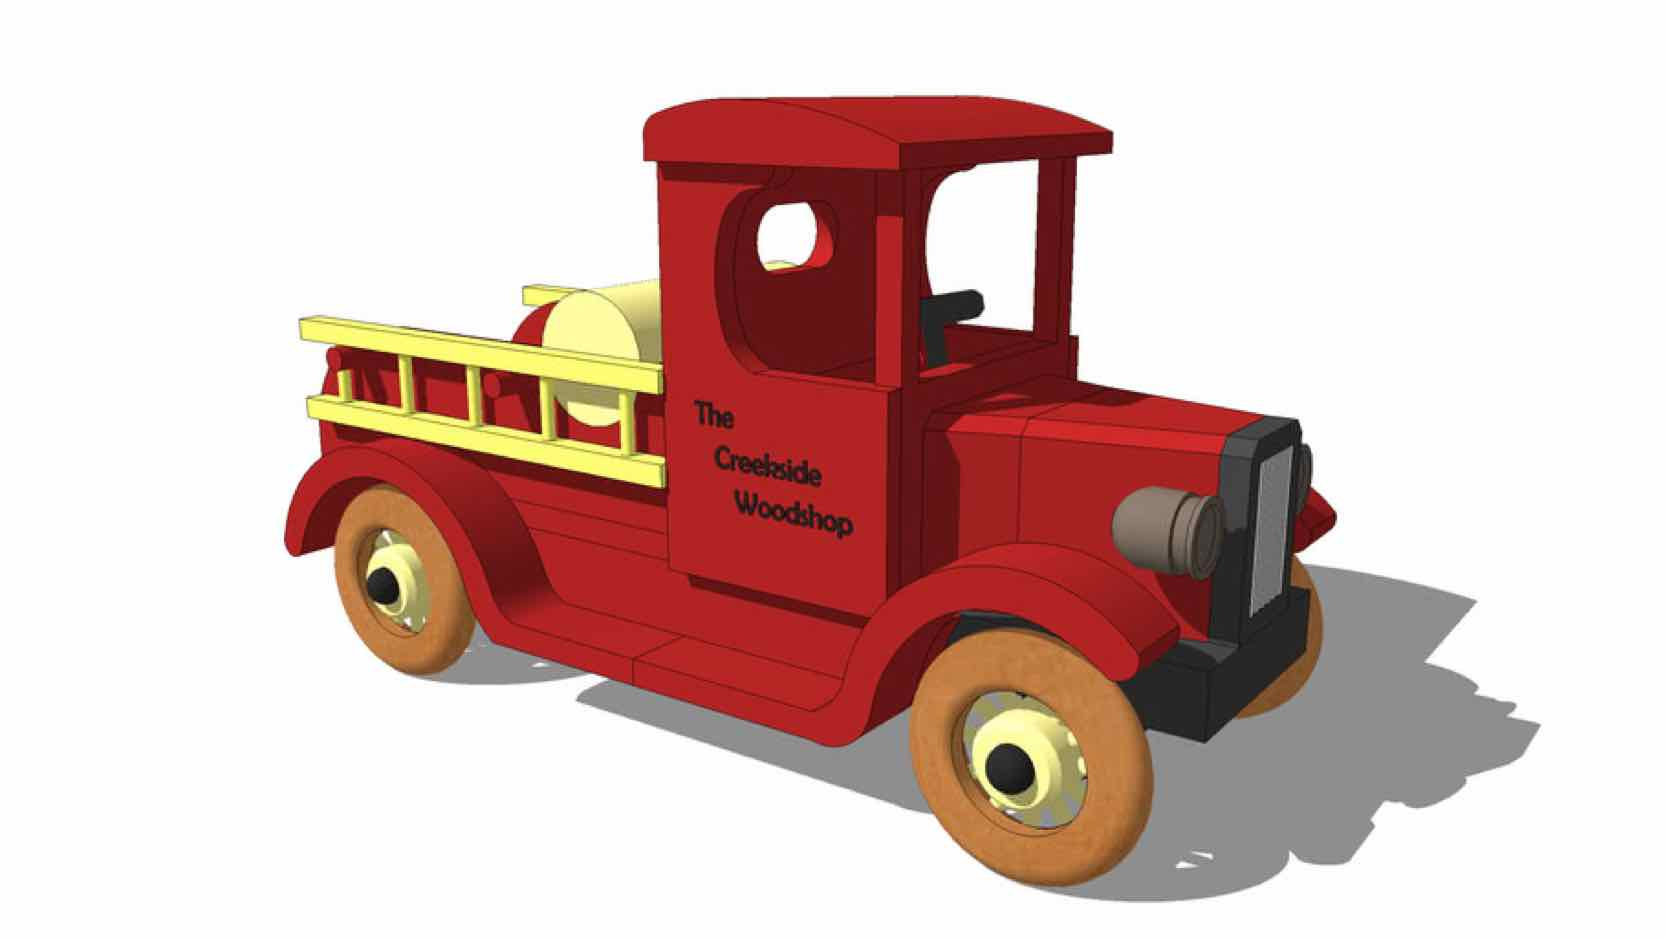 fire trucks,sketchup,Google 3D,toys,games,wooden,childrens,kids,childs,3-D warehouse,furniture,drawings,free woodworking plans,projects,do it yourself,woodworkers